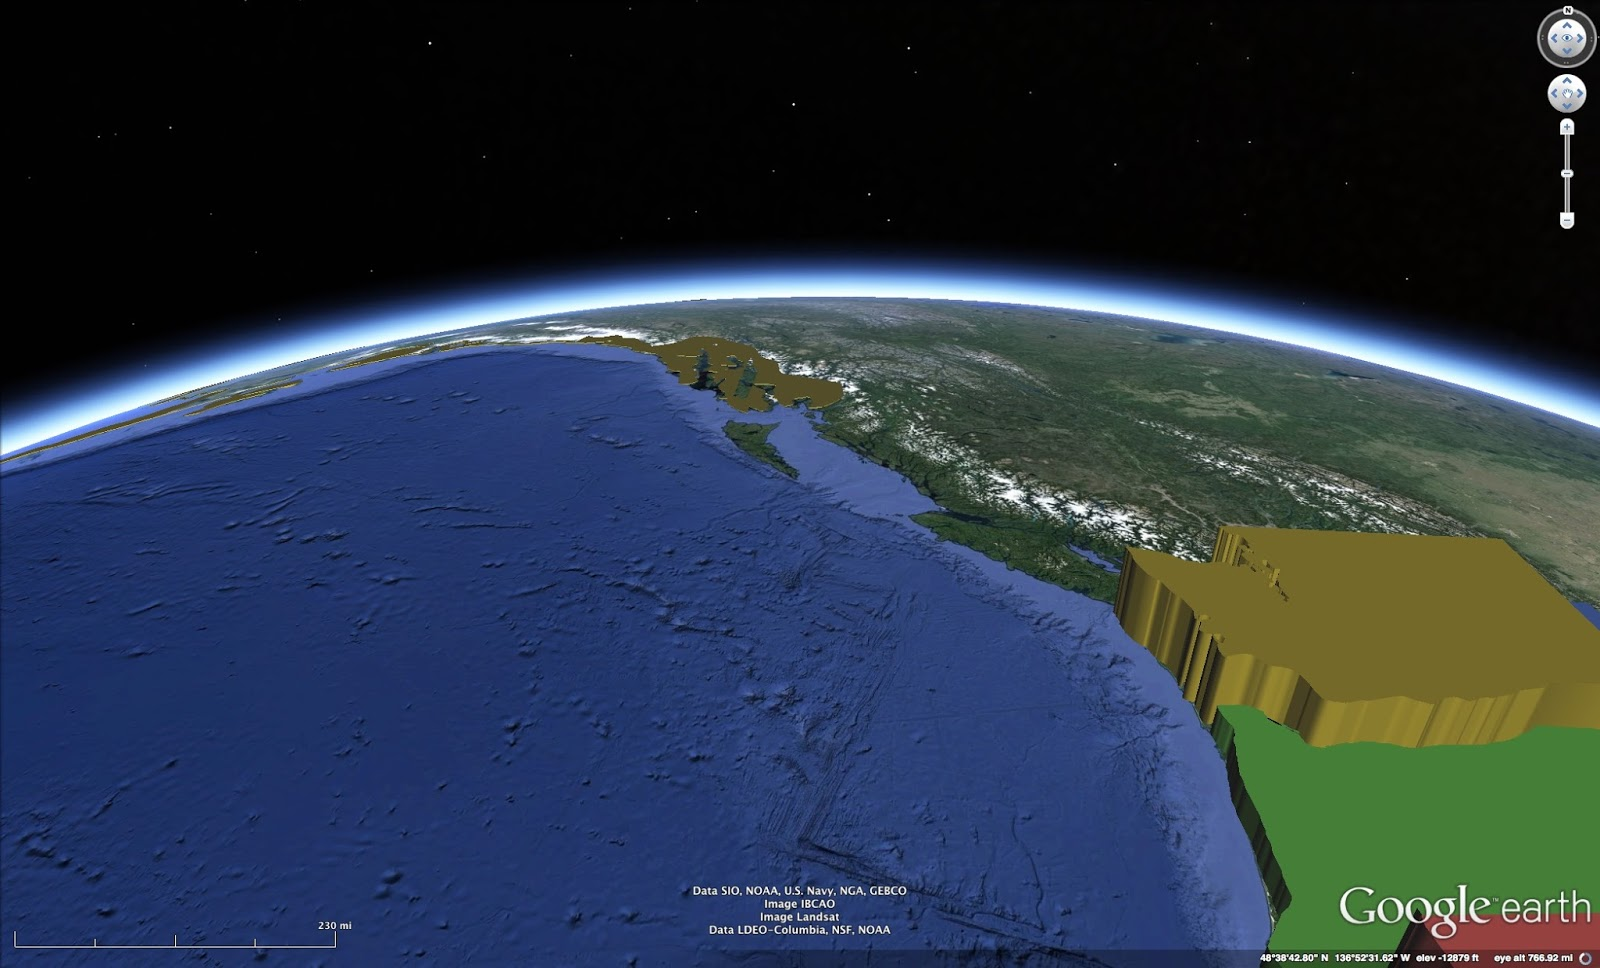 U.S. population density shown in Google Earth